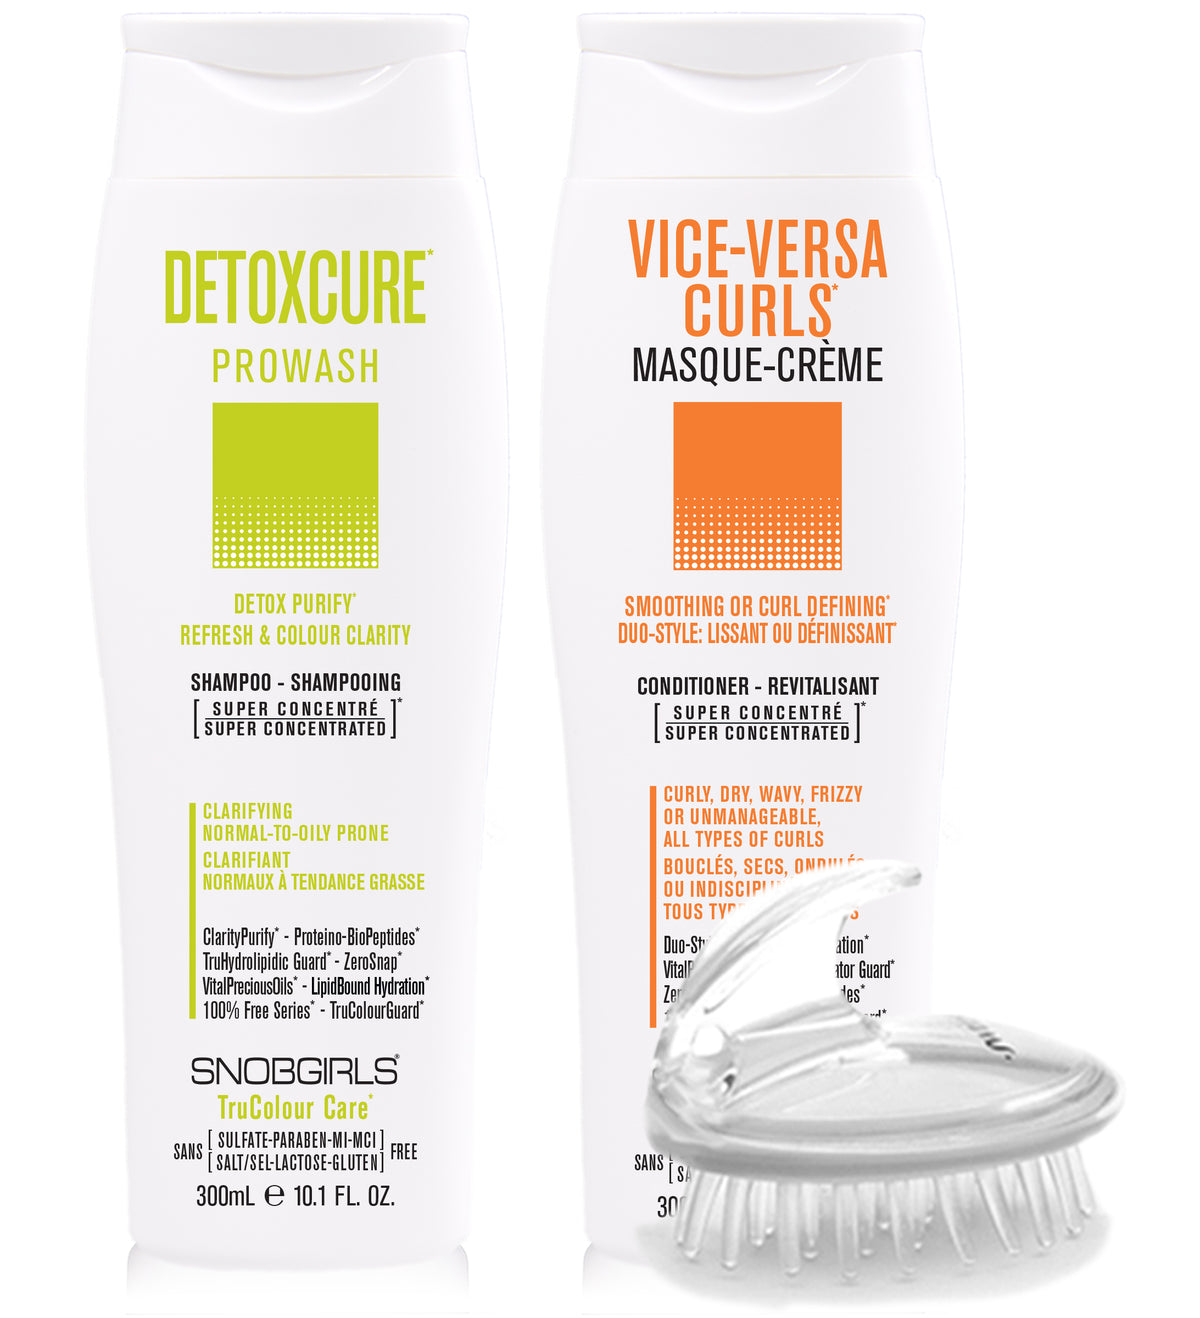 DUO DETOXCURE Prowash + VICE-VERSA CURLS Masque-Creme 10oz + Shampoo Brush - SNOBGIRLS.com